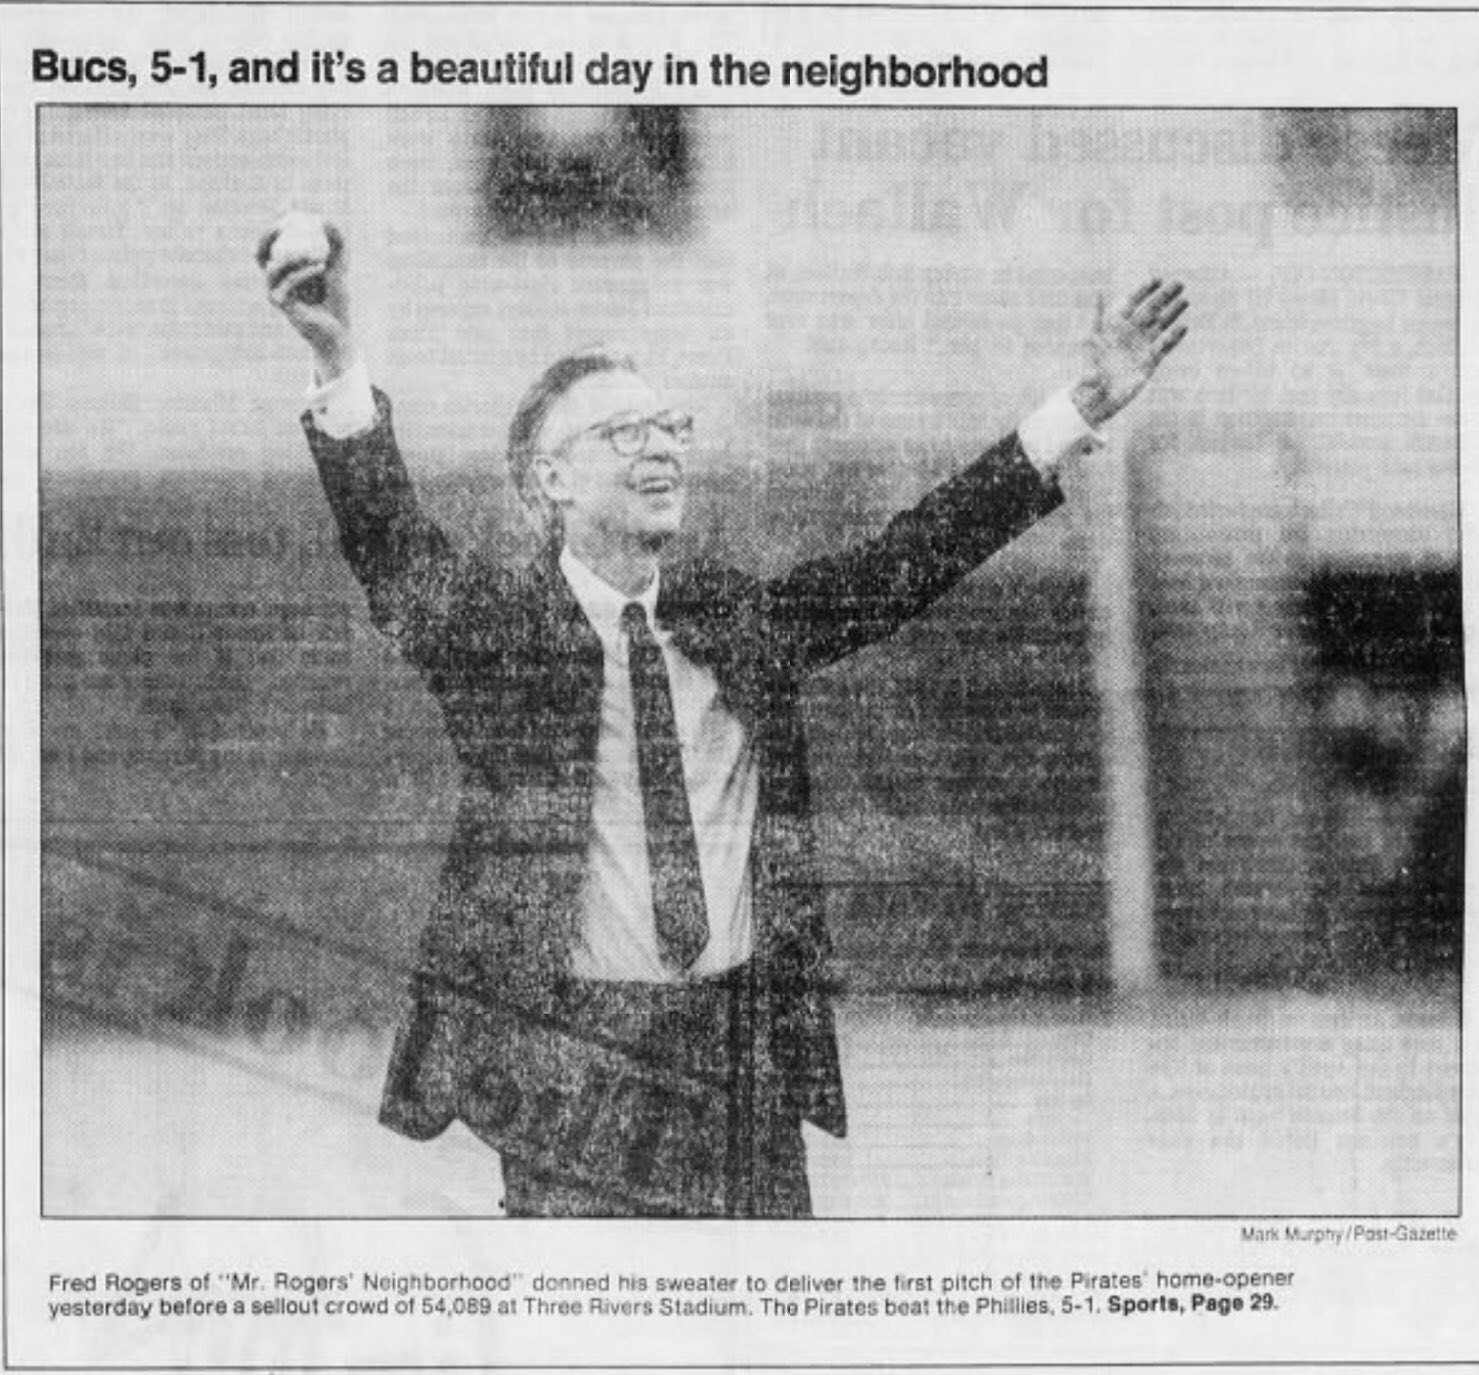 Pgh Sports History On Twitter 30 Years Ago 4 11 88 Fred Rogers Throws Out First Pitch On Opening Day At Three Rivers Stadium Letsgobucs Mrrogersneighborhood Https T Co Oiubspzfcf